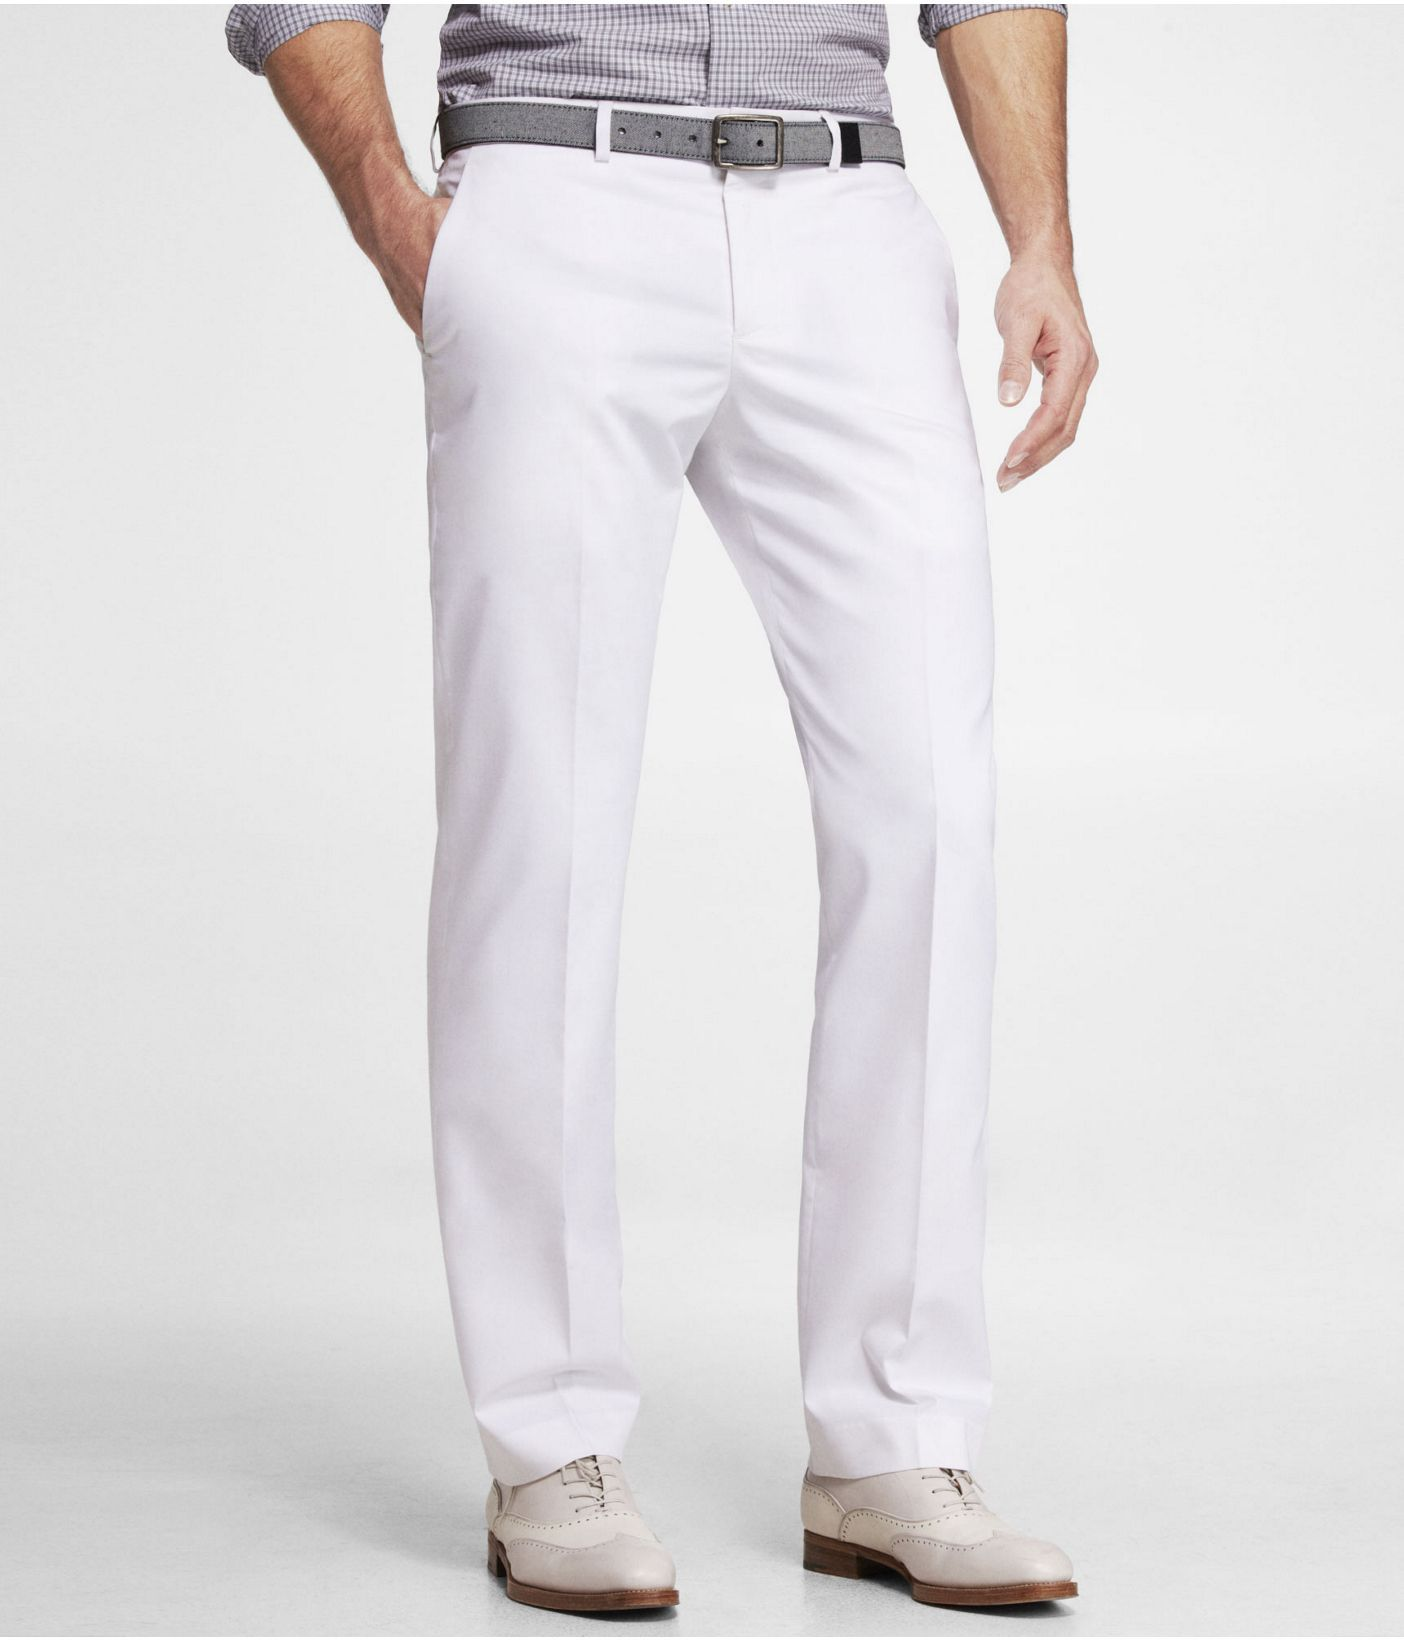 WHITE COTTON SATEEN PHOTOGRAPHER SUIT PANT   Express   Men s fashion ... 02aa74dafb